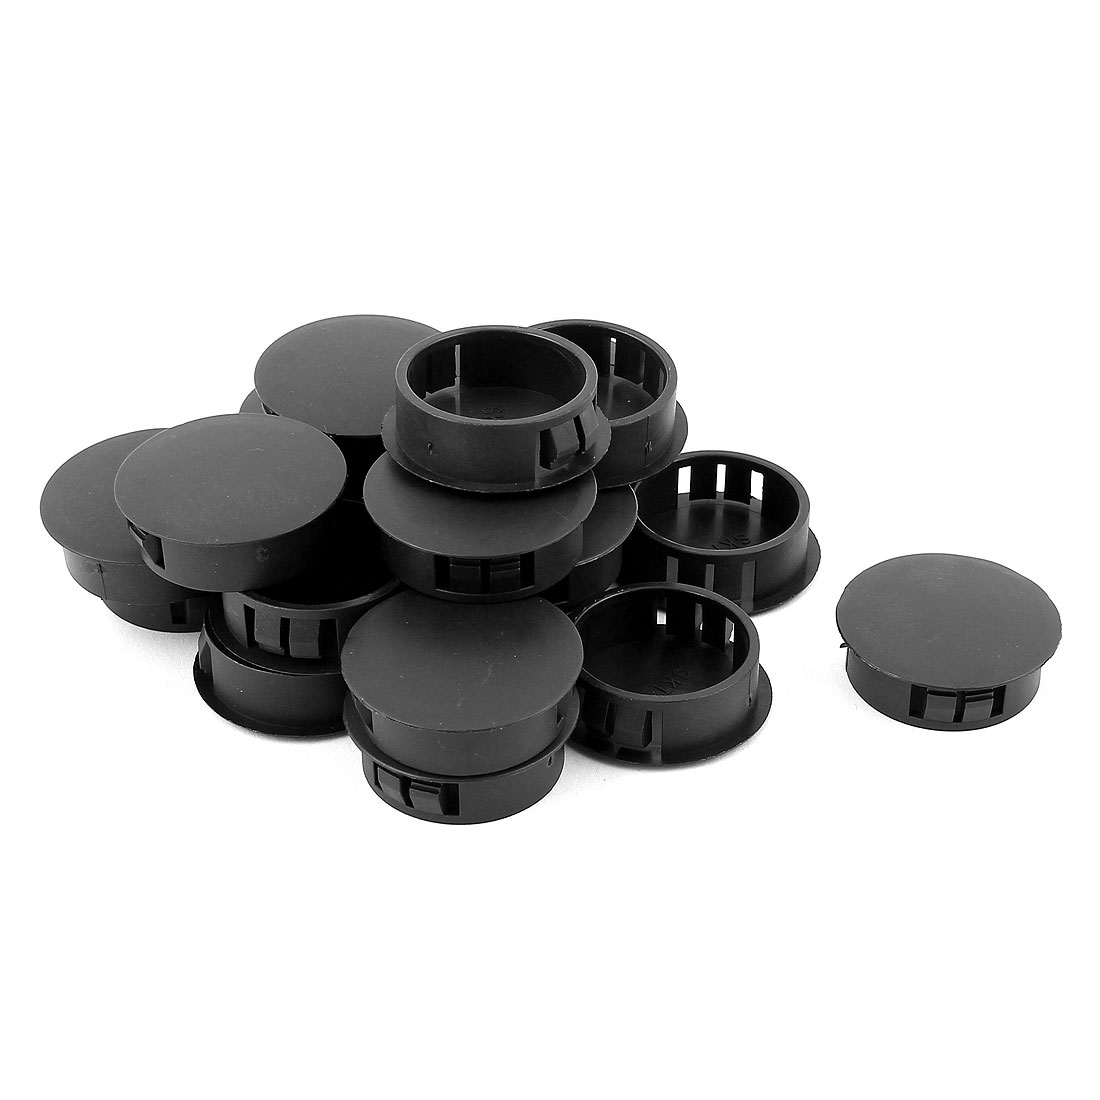 30Pcs SKT-30 Black Insulated Snap in Mounting Locking 30mm Panel